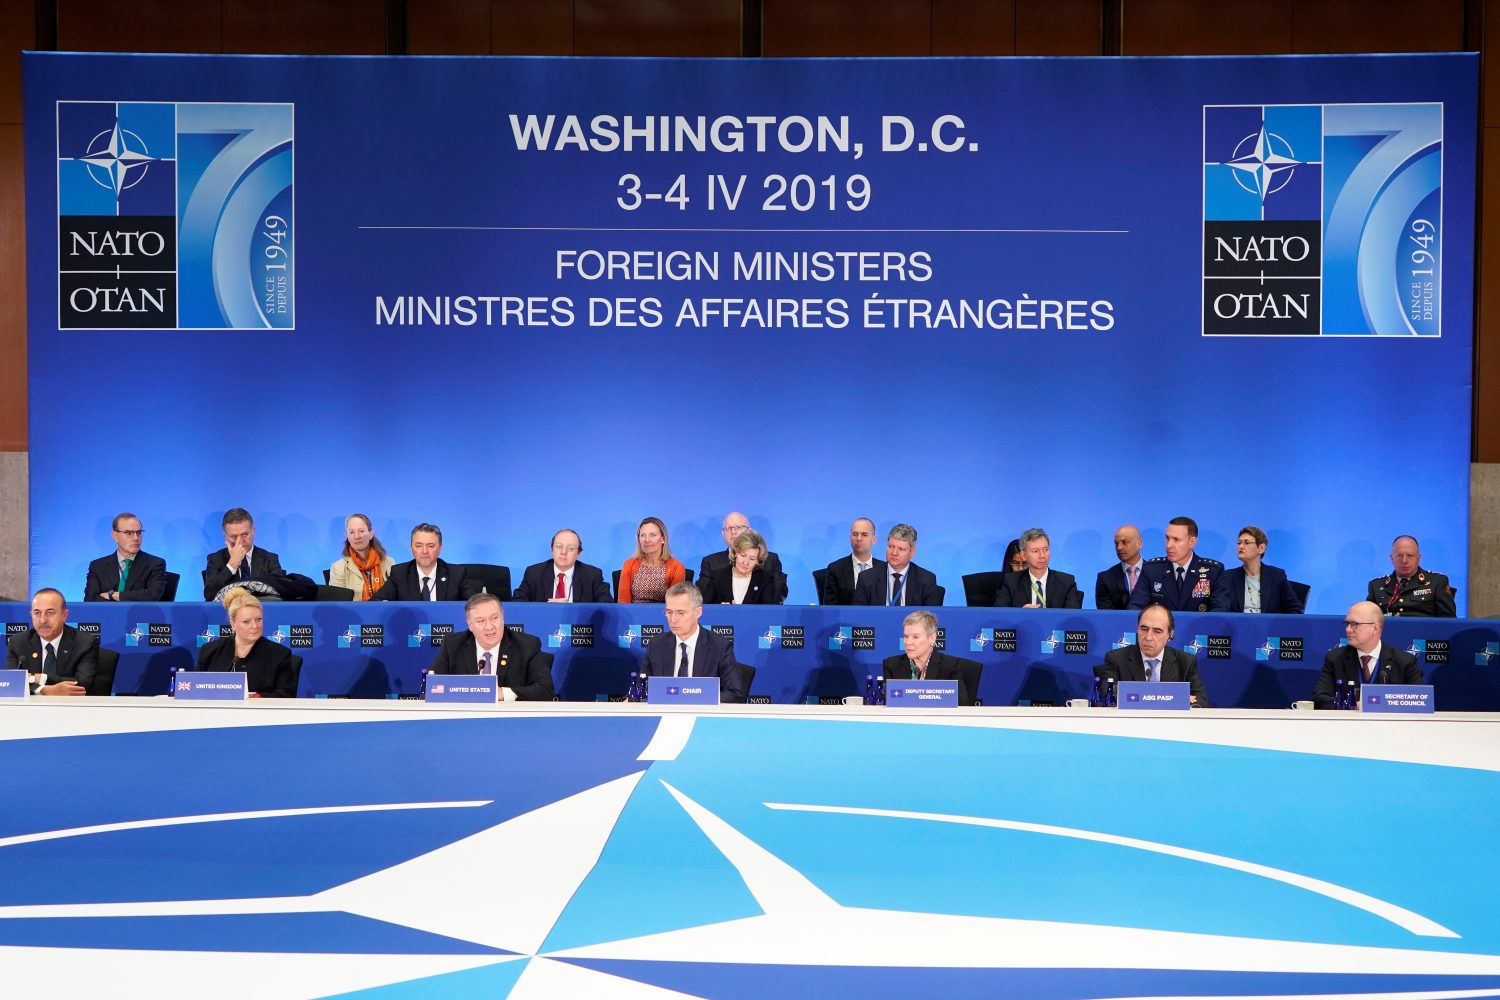 U.S. Secretary of State Mike Pompeo (3rd L) speaks at the meeting of the North Atlantic Treaty Organization (NATO) Foreign Ministers at the State Department in Washington, U.S., April 4, 2019. REUTERS/Joshua Roberts